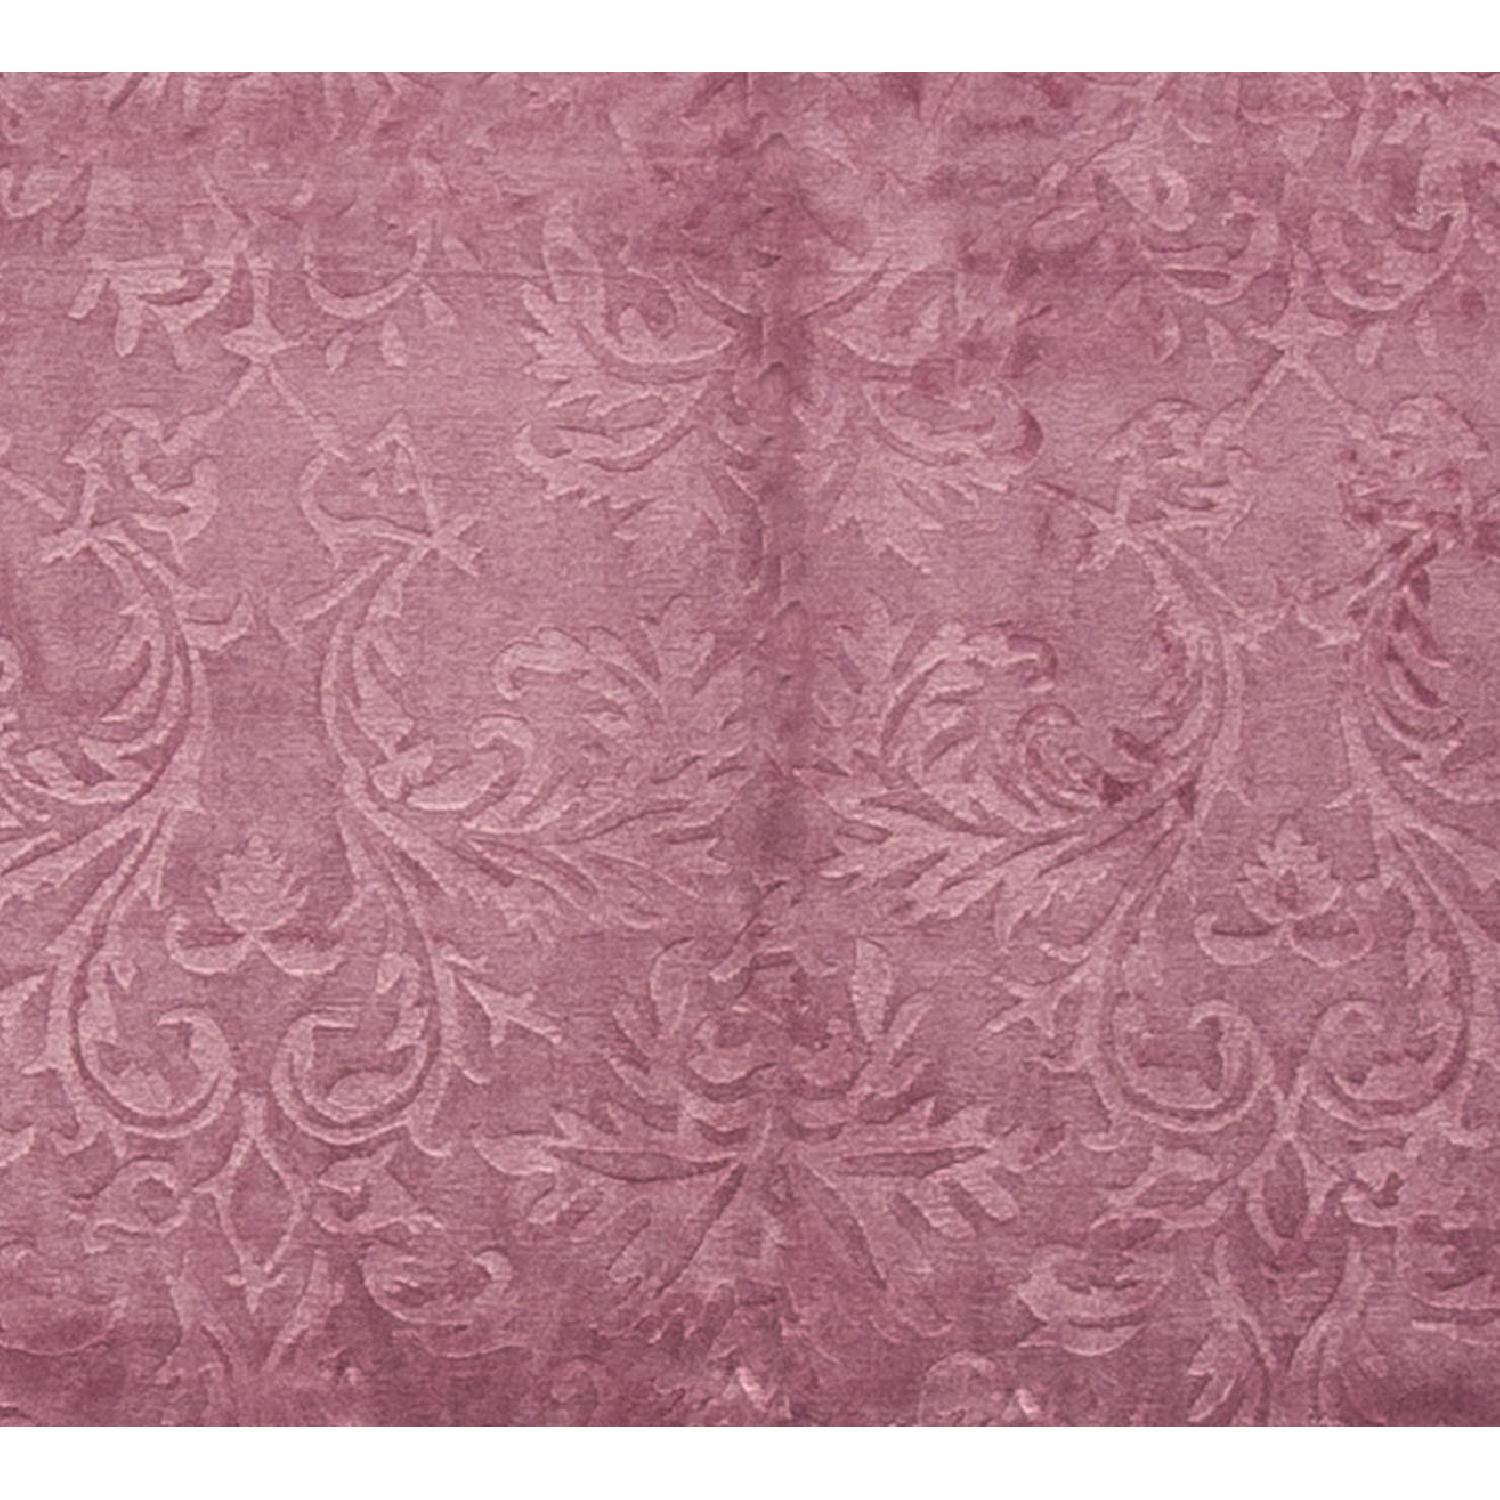 Modern Contemporary Hand Knotted Wool Rug in Plum - image-2